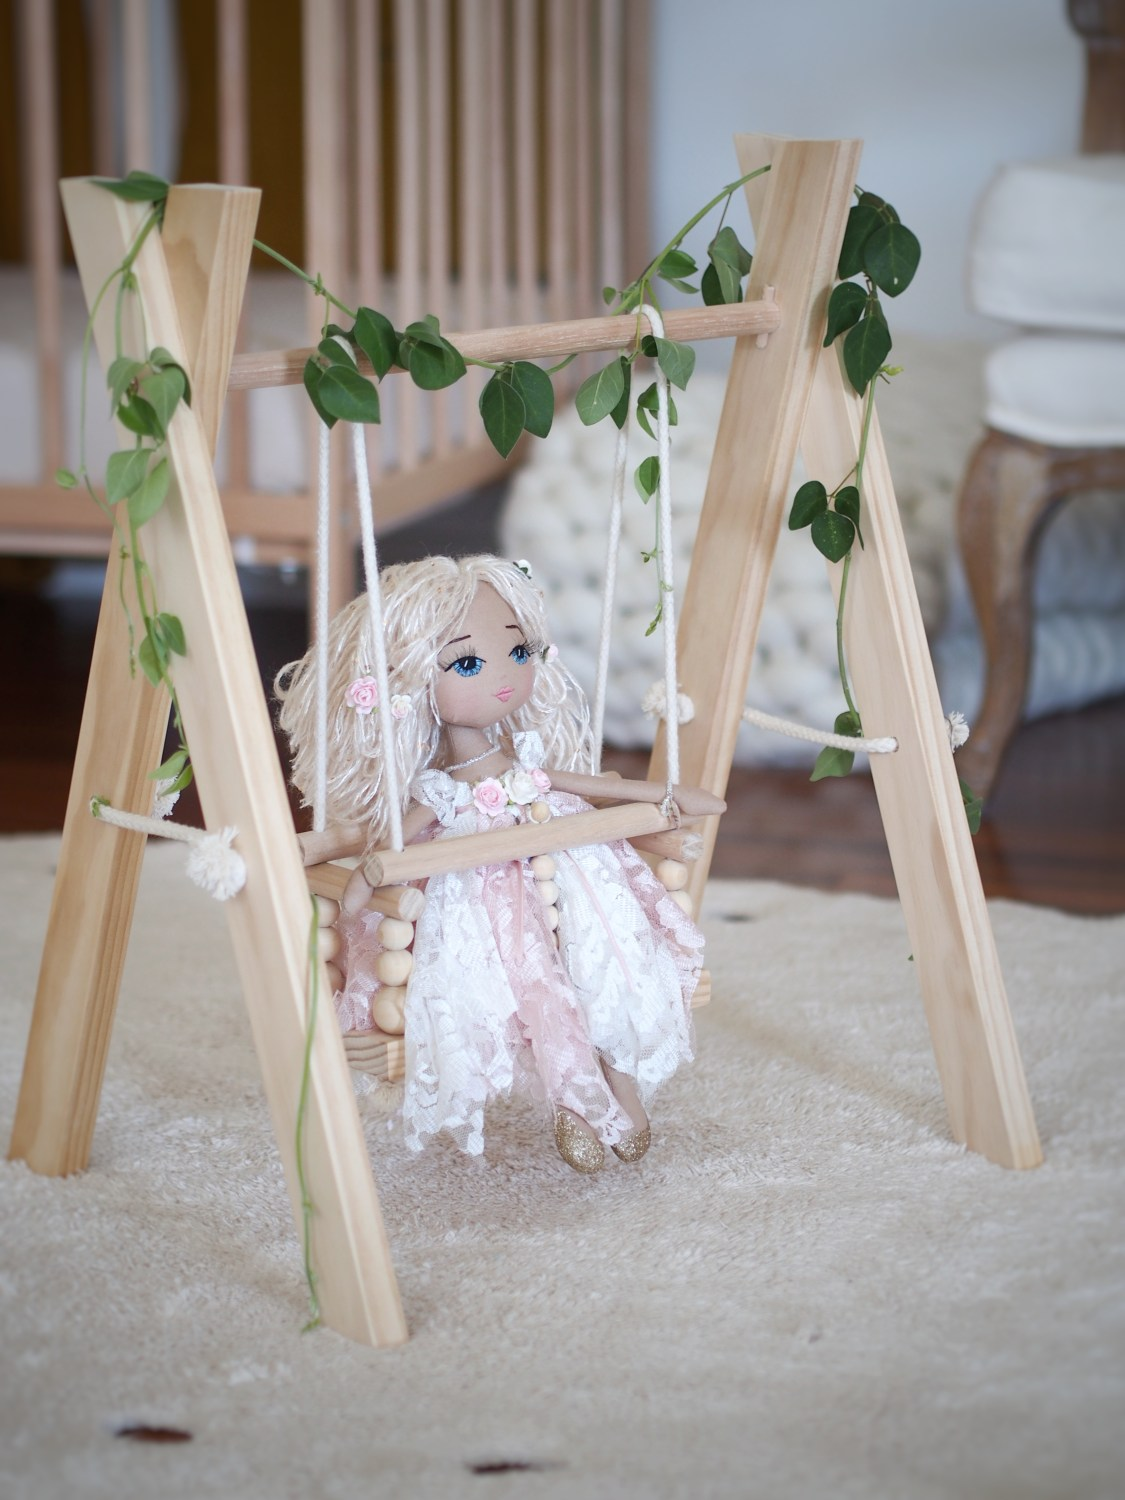 Millie's Nursery: Made for Imaginative Play | Real Nurseries styled by REAL mamas | www.nestlingcollective.com